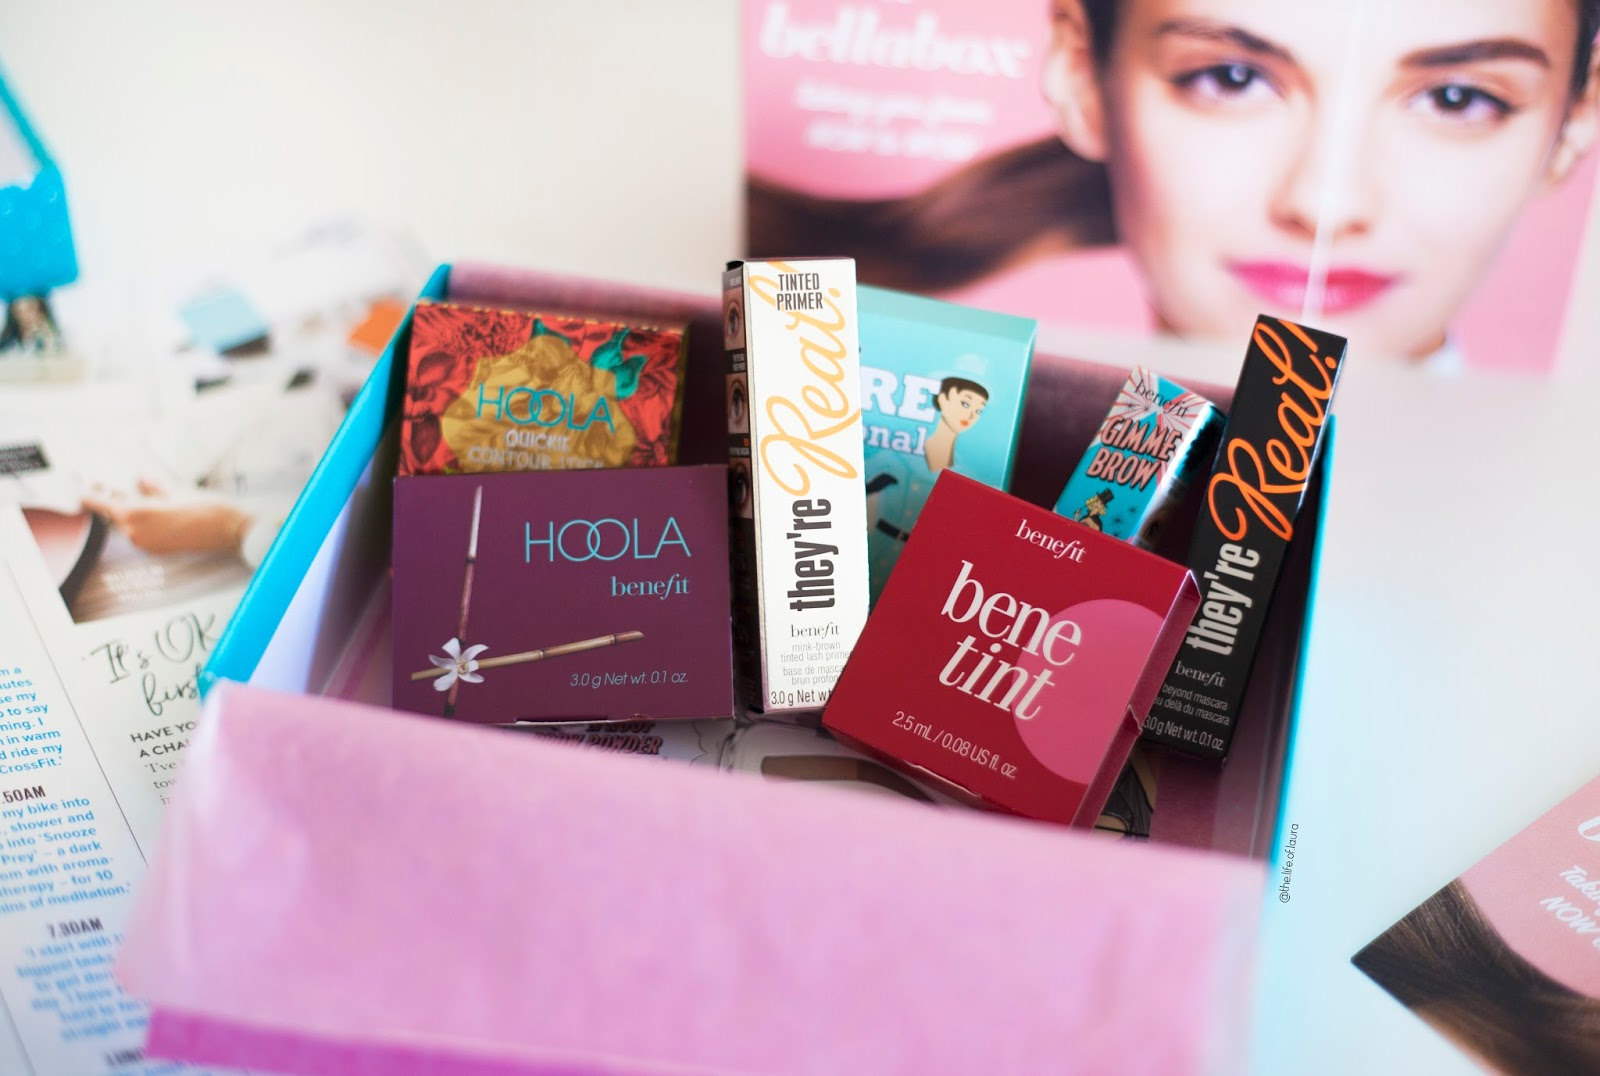 Bellabox x Benefit